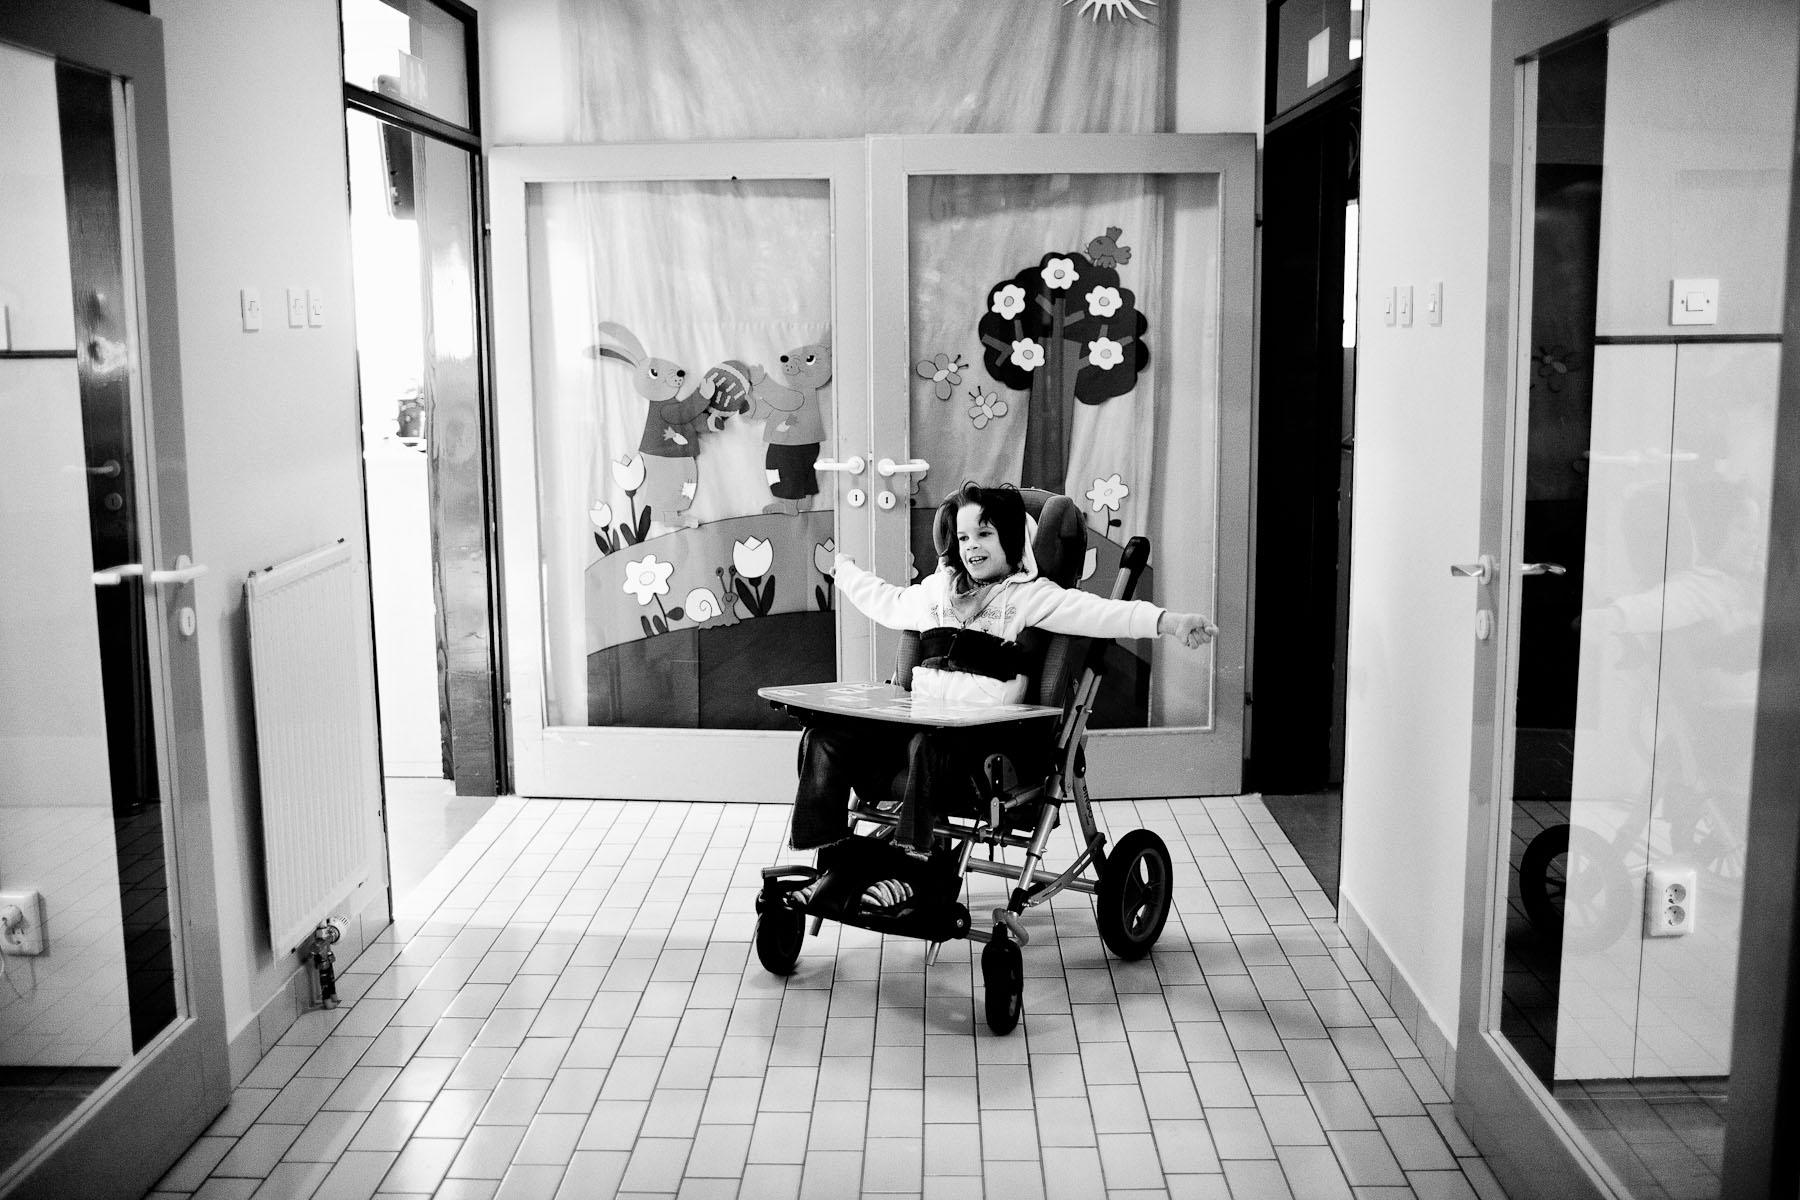 Barbara waits for her defectologist Nada Slana to take her to elementary school in Dornava where she joins first graders once a week. Dr. Marijan Borstnar rehabilitation institute in Dornava, Slovenia, April 5, 2012.